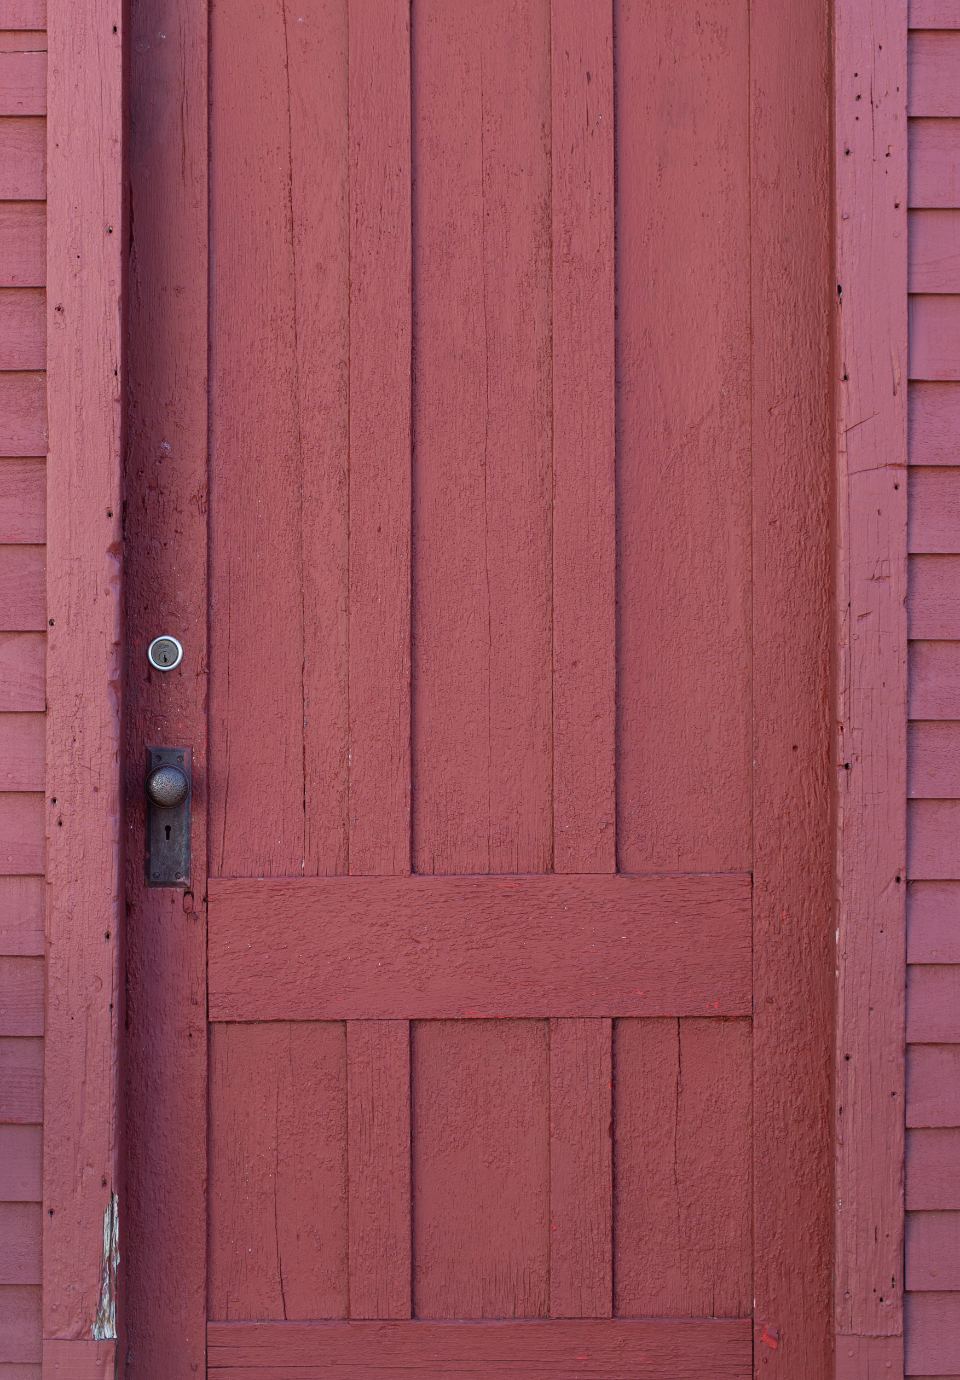 red door wooden building barn rustic entrance exterior old wood painted background design architecture